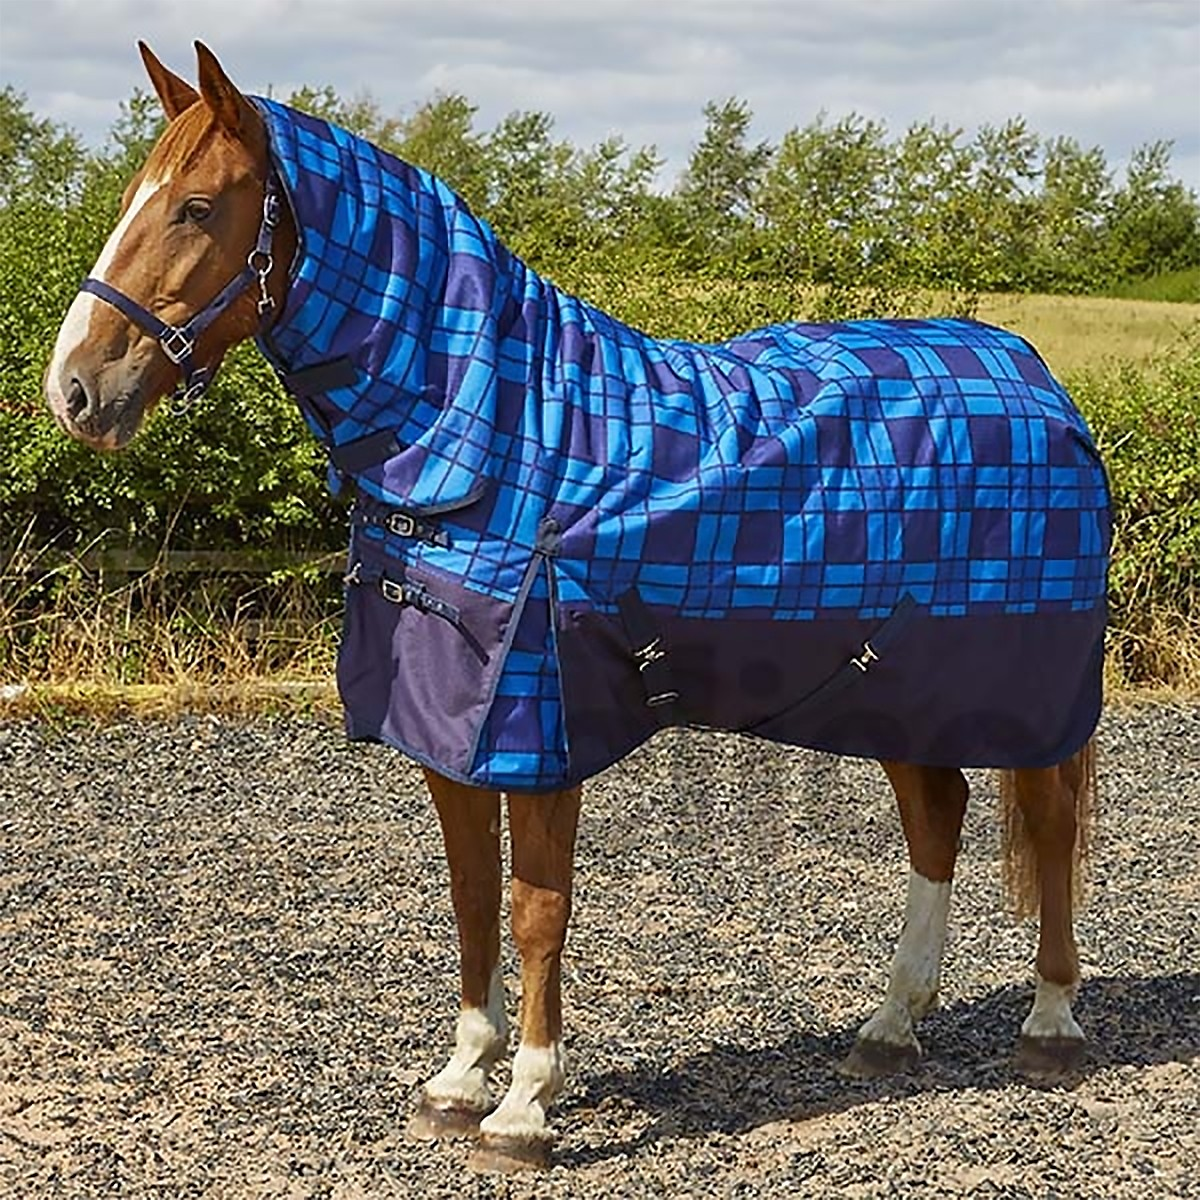 Elicouture Torridon 300g Heavyweight Combo Turnout Rug